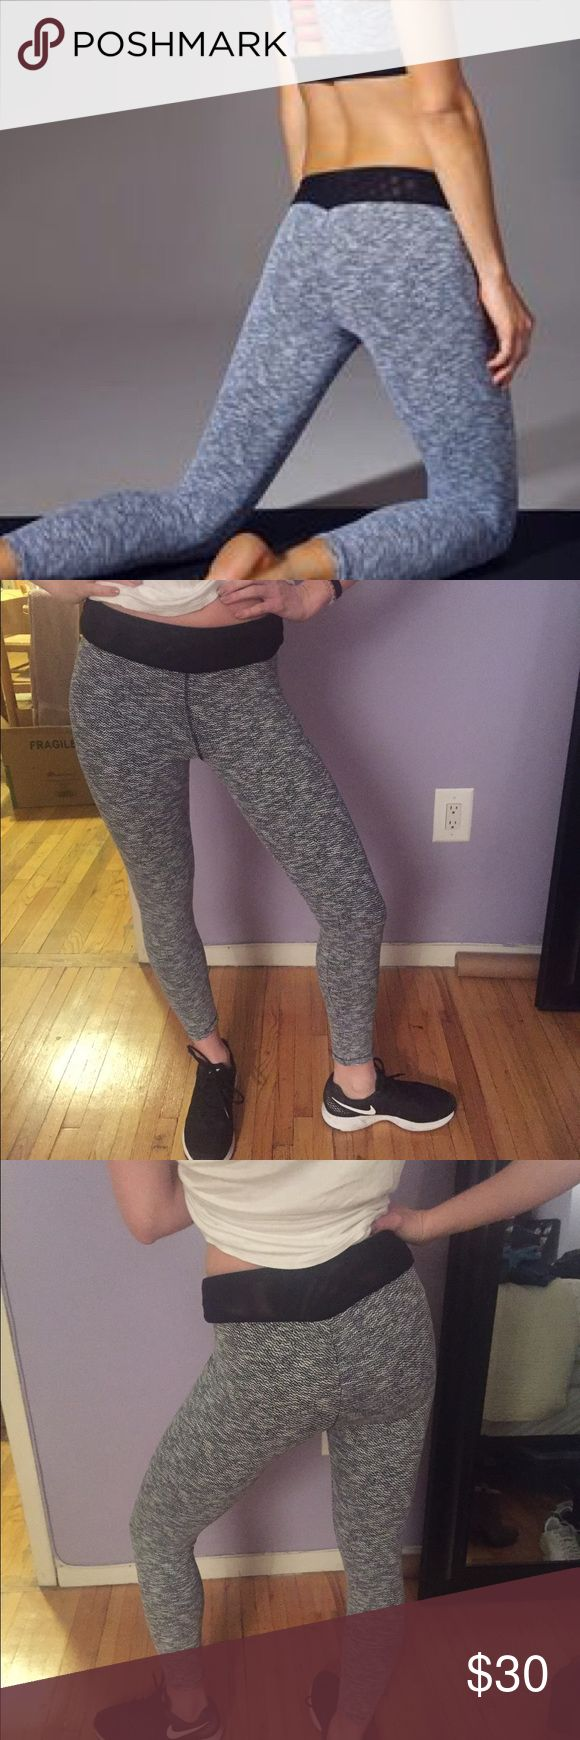 Super cute S blue life leggings These Gray and white leggings are great for working out or running around. They have a meshed top, and a cinched butt. Worn twice. Blue Life Pants